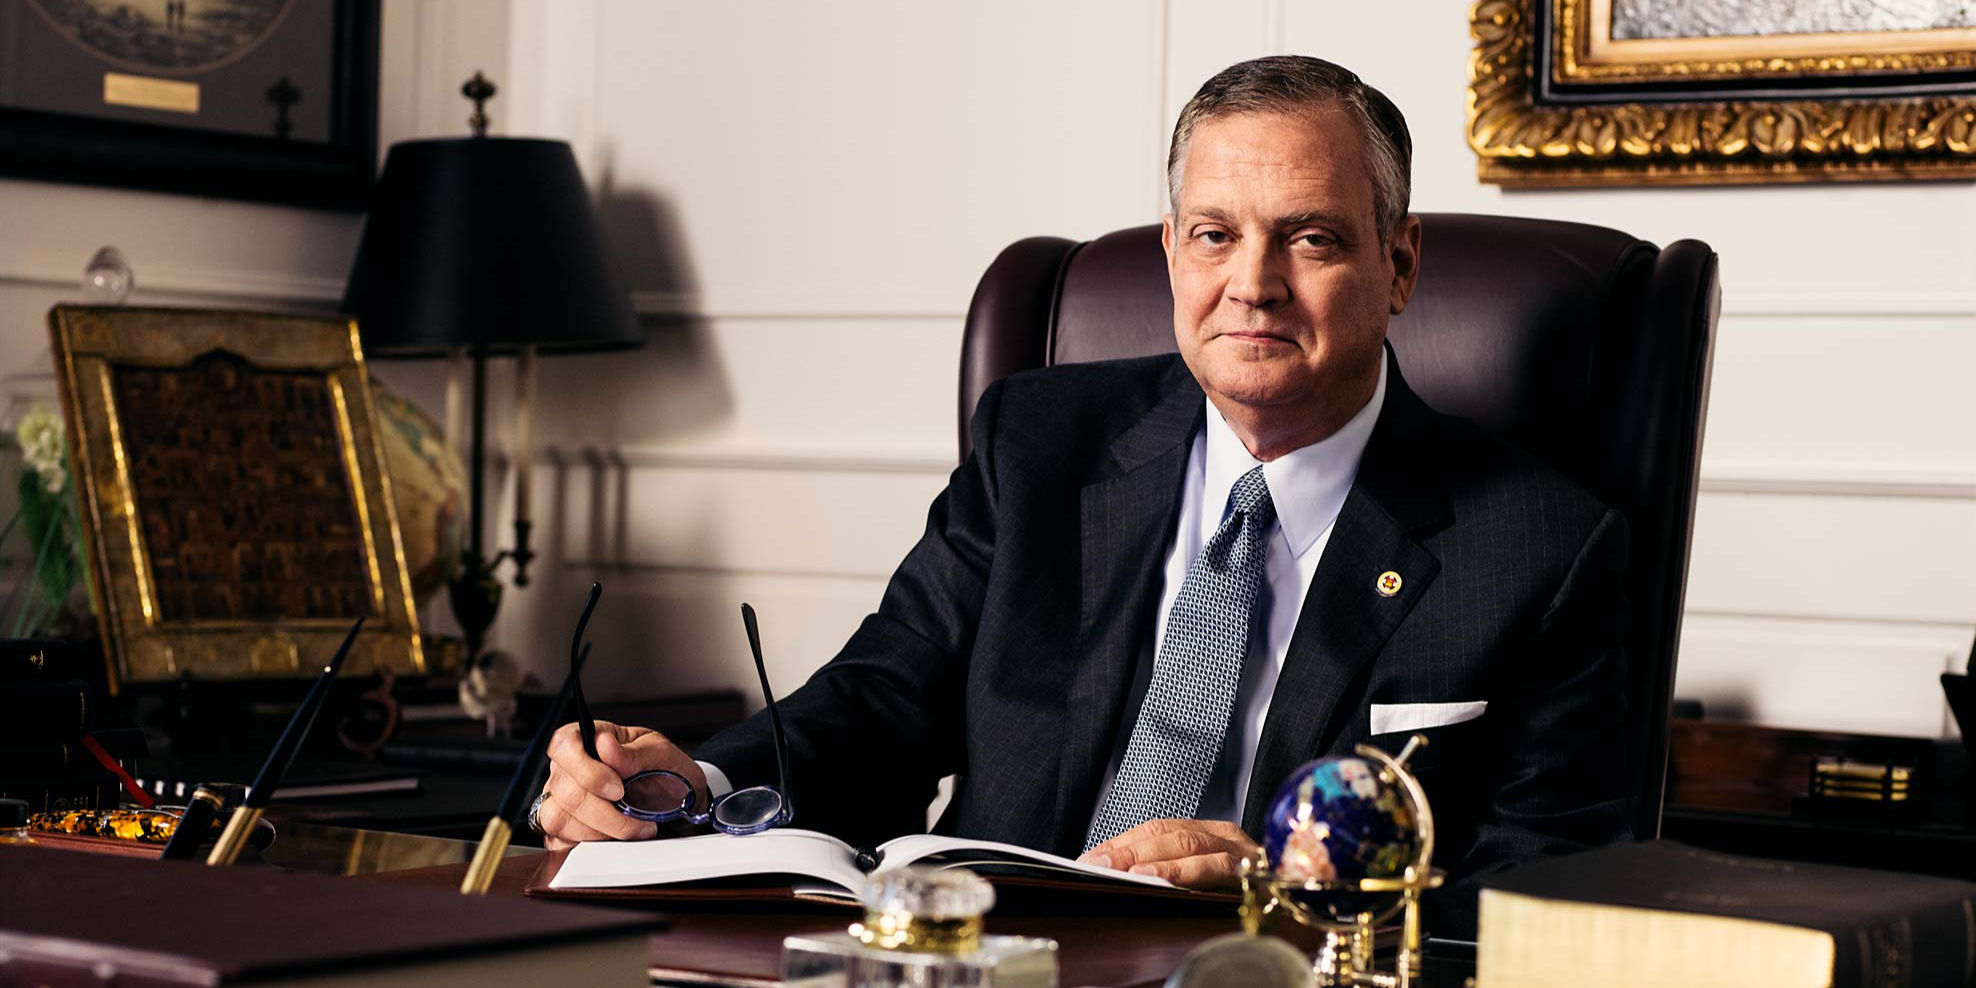 Al Mohler Stands by Vote for Trump, but is 'Horrified' by 'American Nightmare' on Capitol Hill